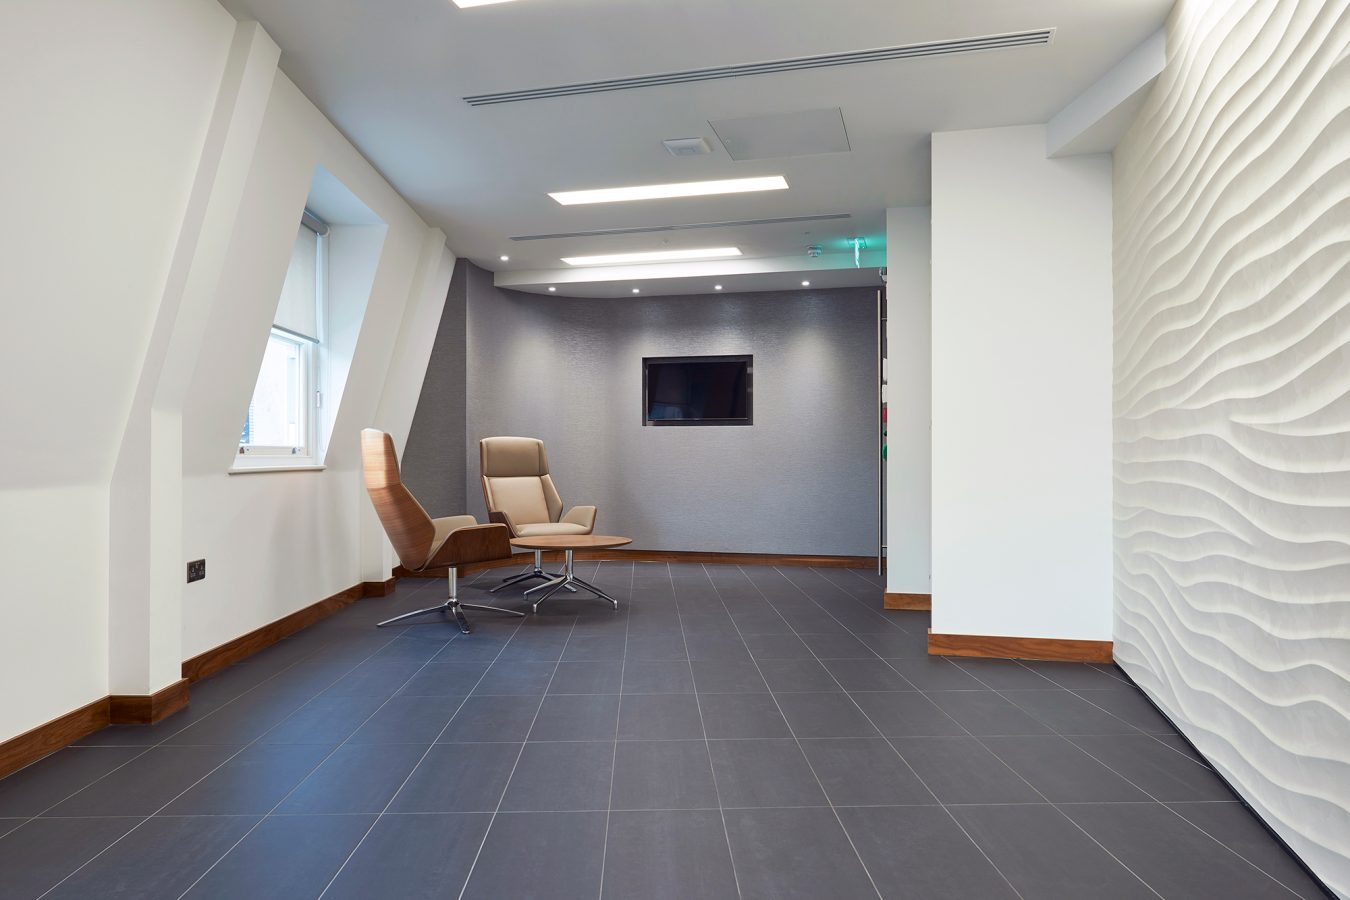 Wall contemporary design for office, in white, meeting room ideas, fit out near London.